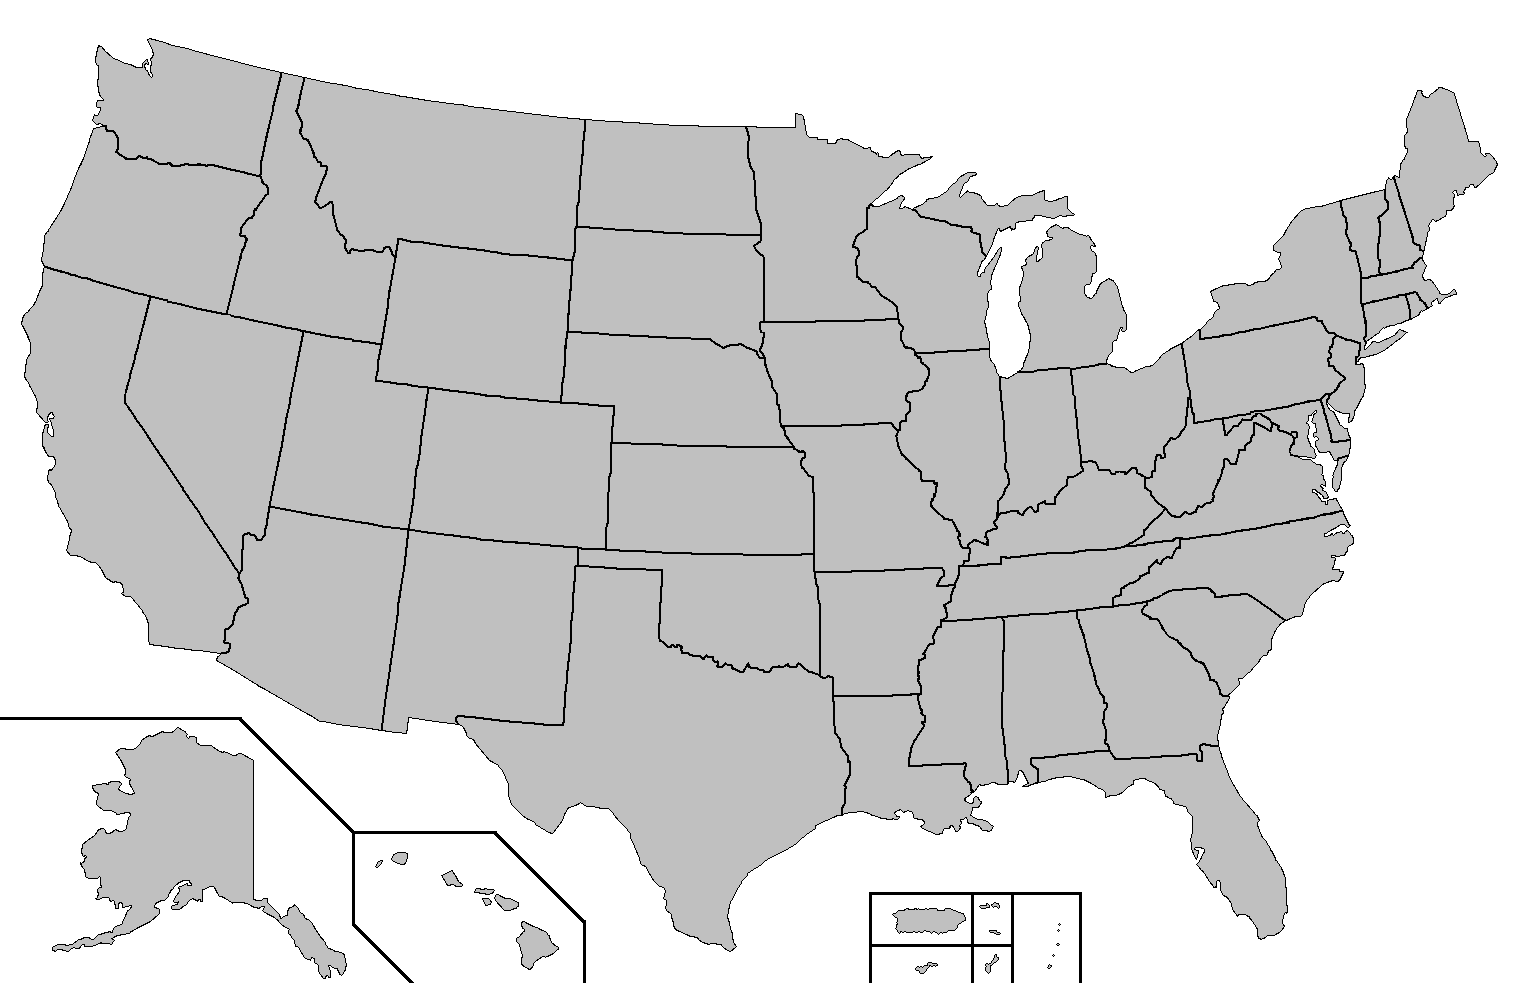 FileBlank map of the United StatesPNG Wikimedia Commons